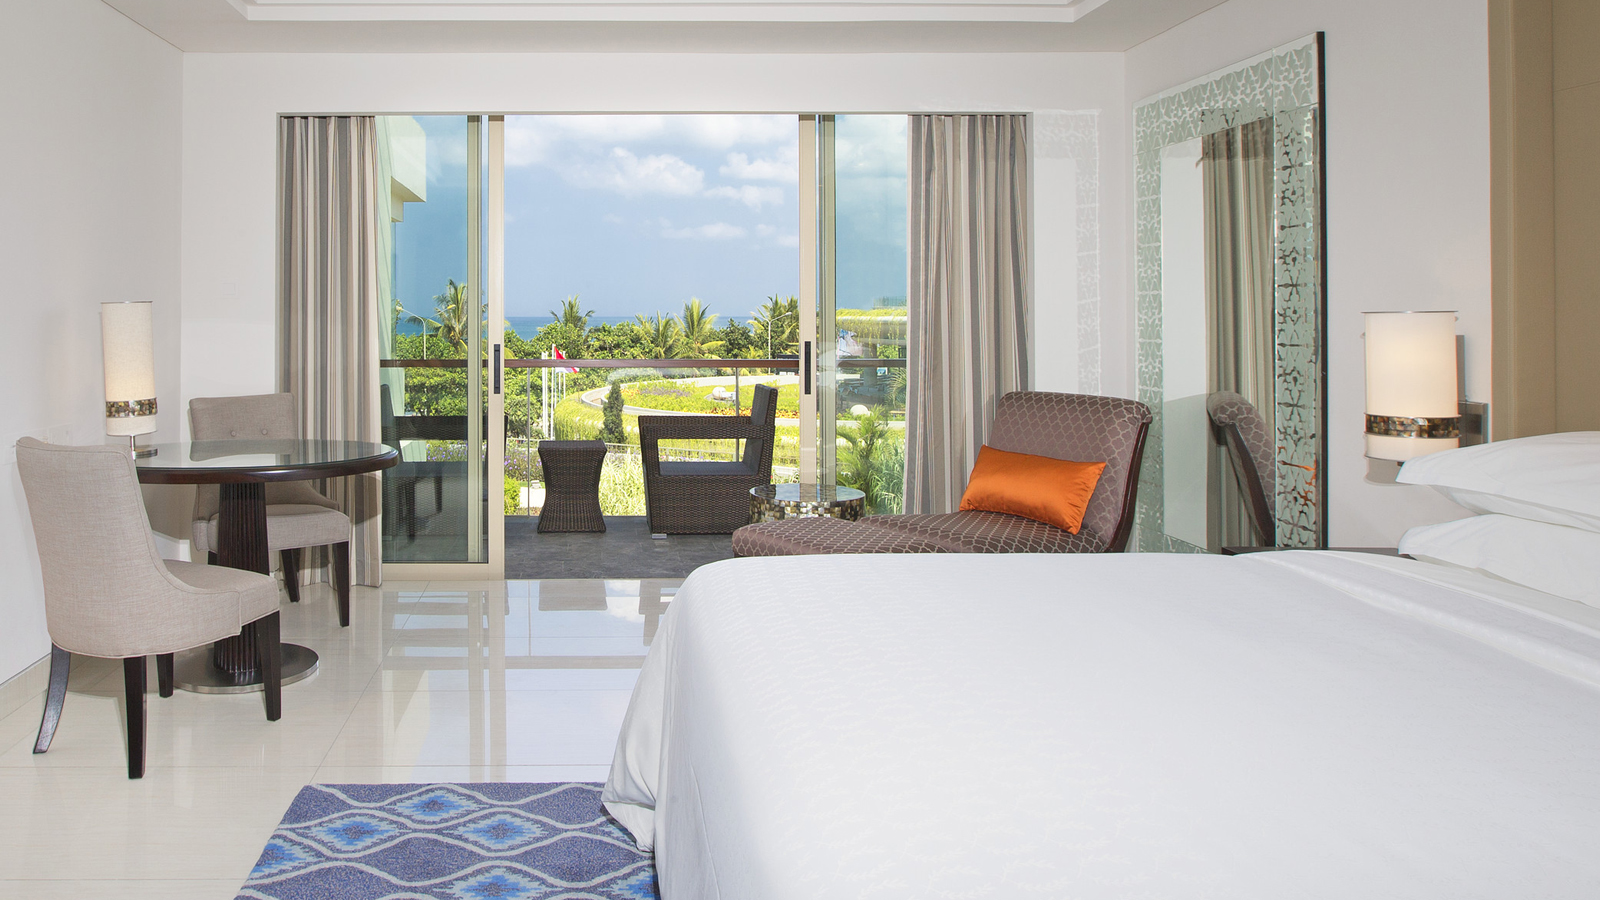 Luxury Resort Bali Deluxe Ocean View